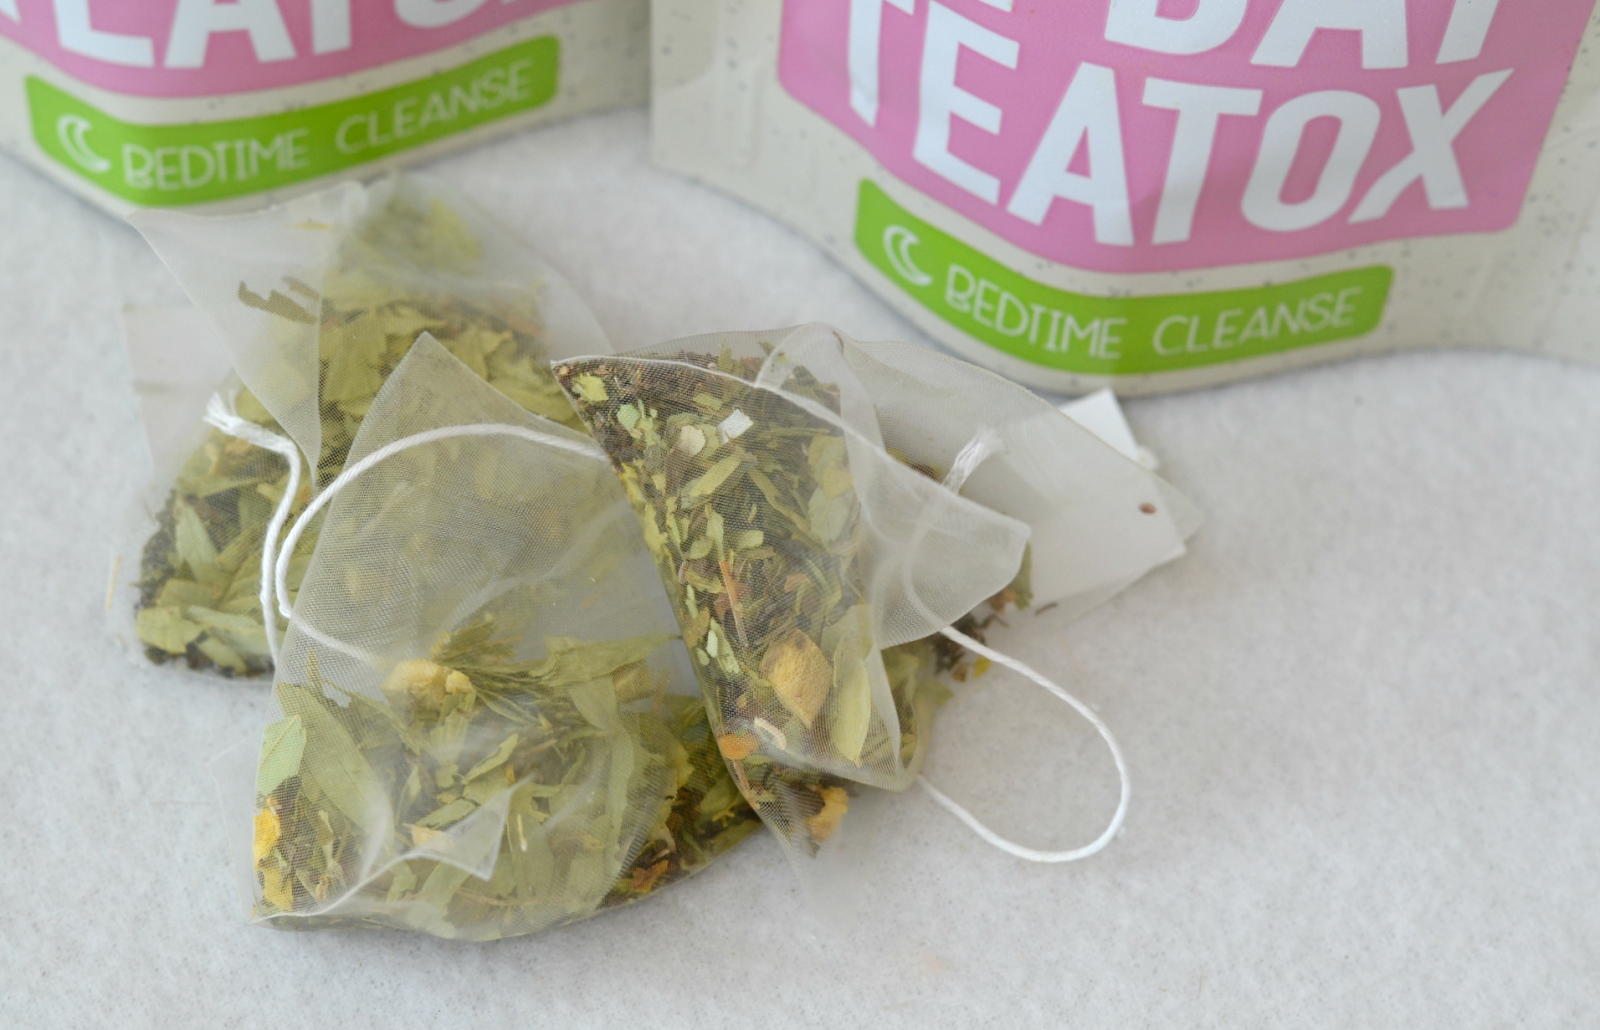 London Beauty Queen: BooTea Cleansing Detox Teas: Are They Really Worth The Hype?